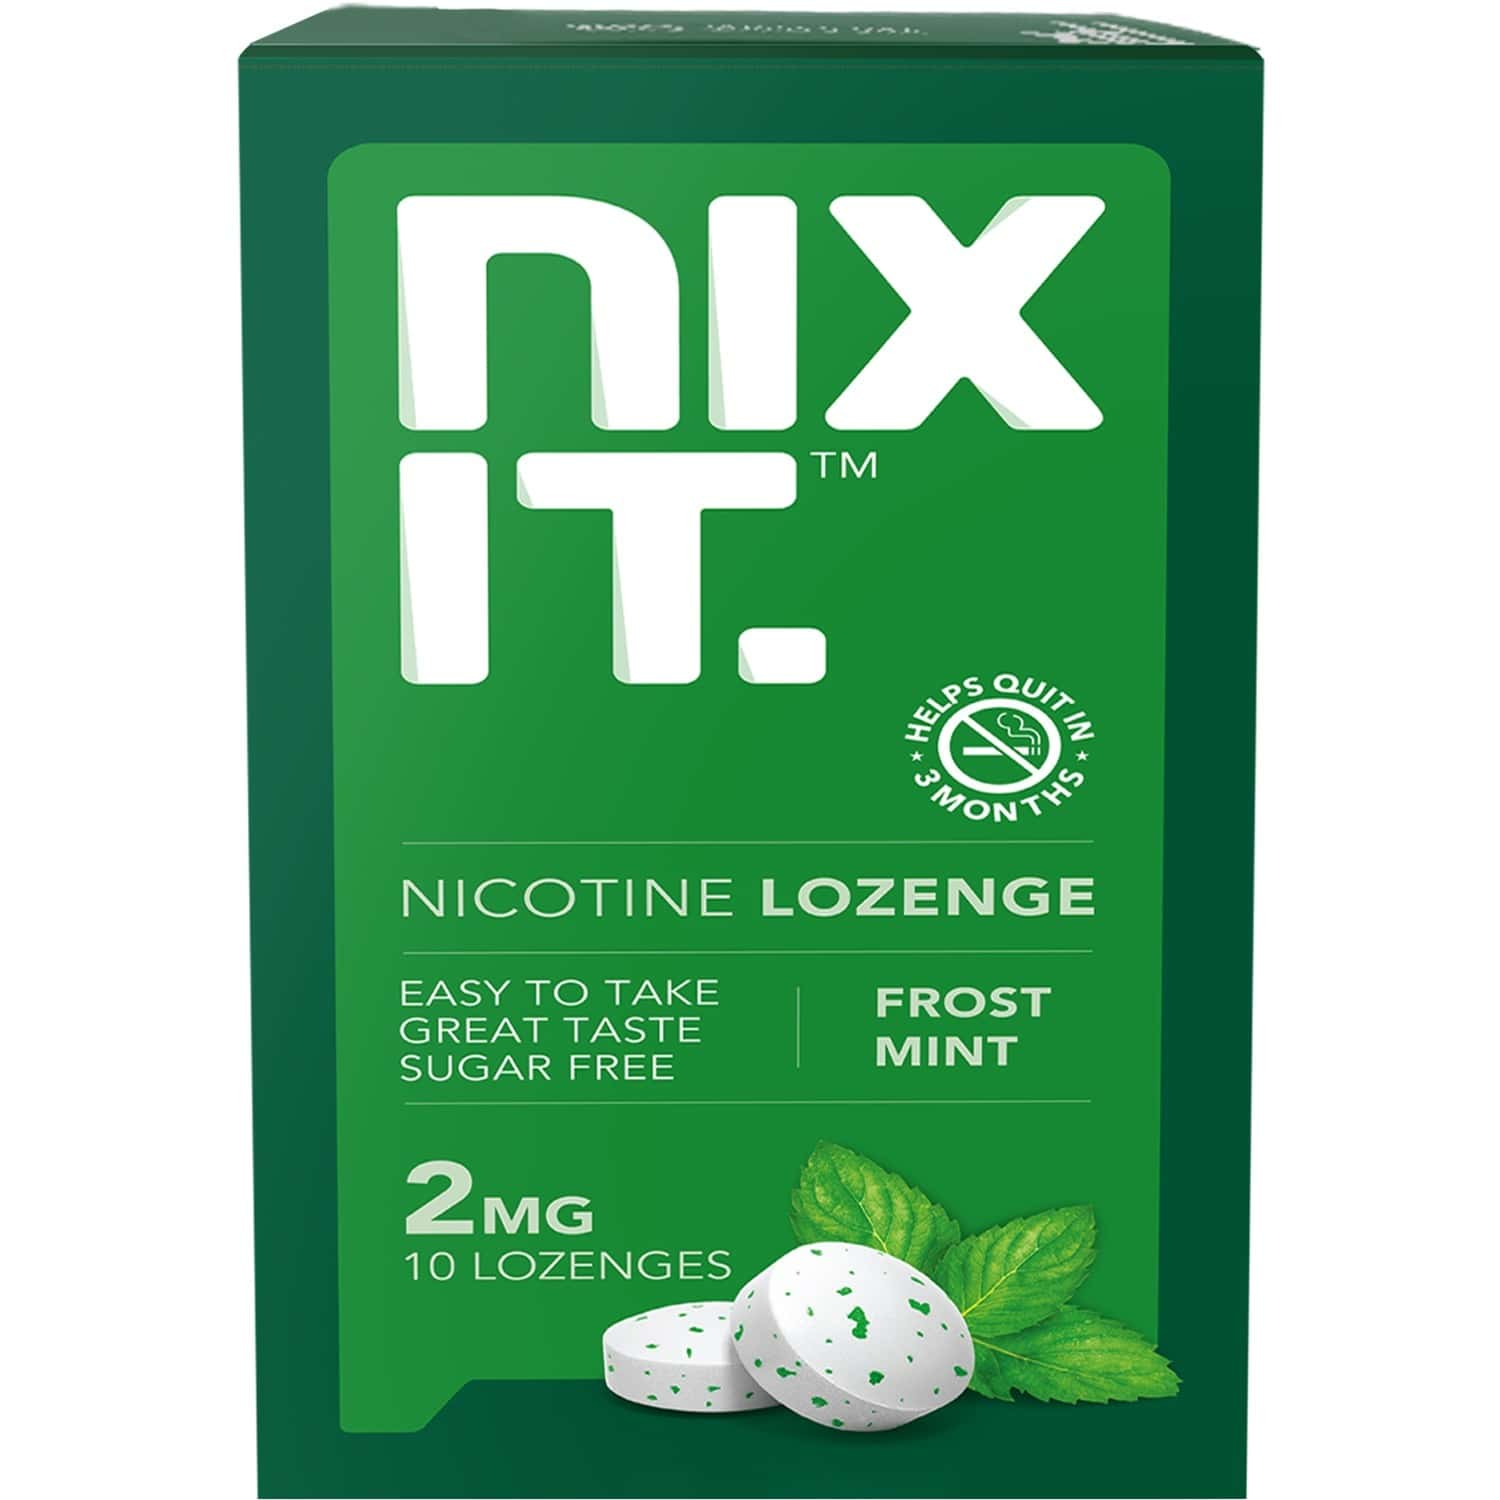 Nixit Nicotine Frost Mint Lozenges 2mg, Sugar Free (pack Of 40) - Helps Quit Smoking